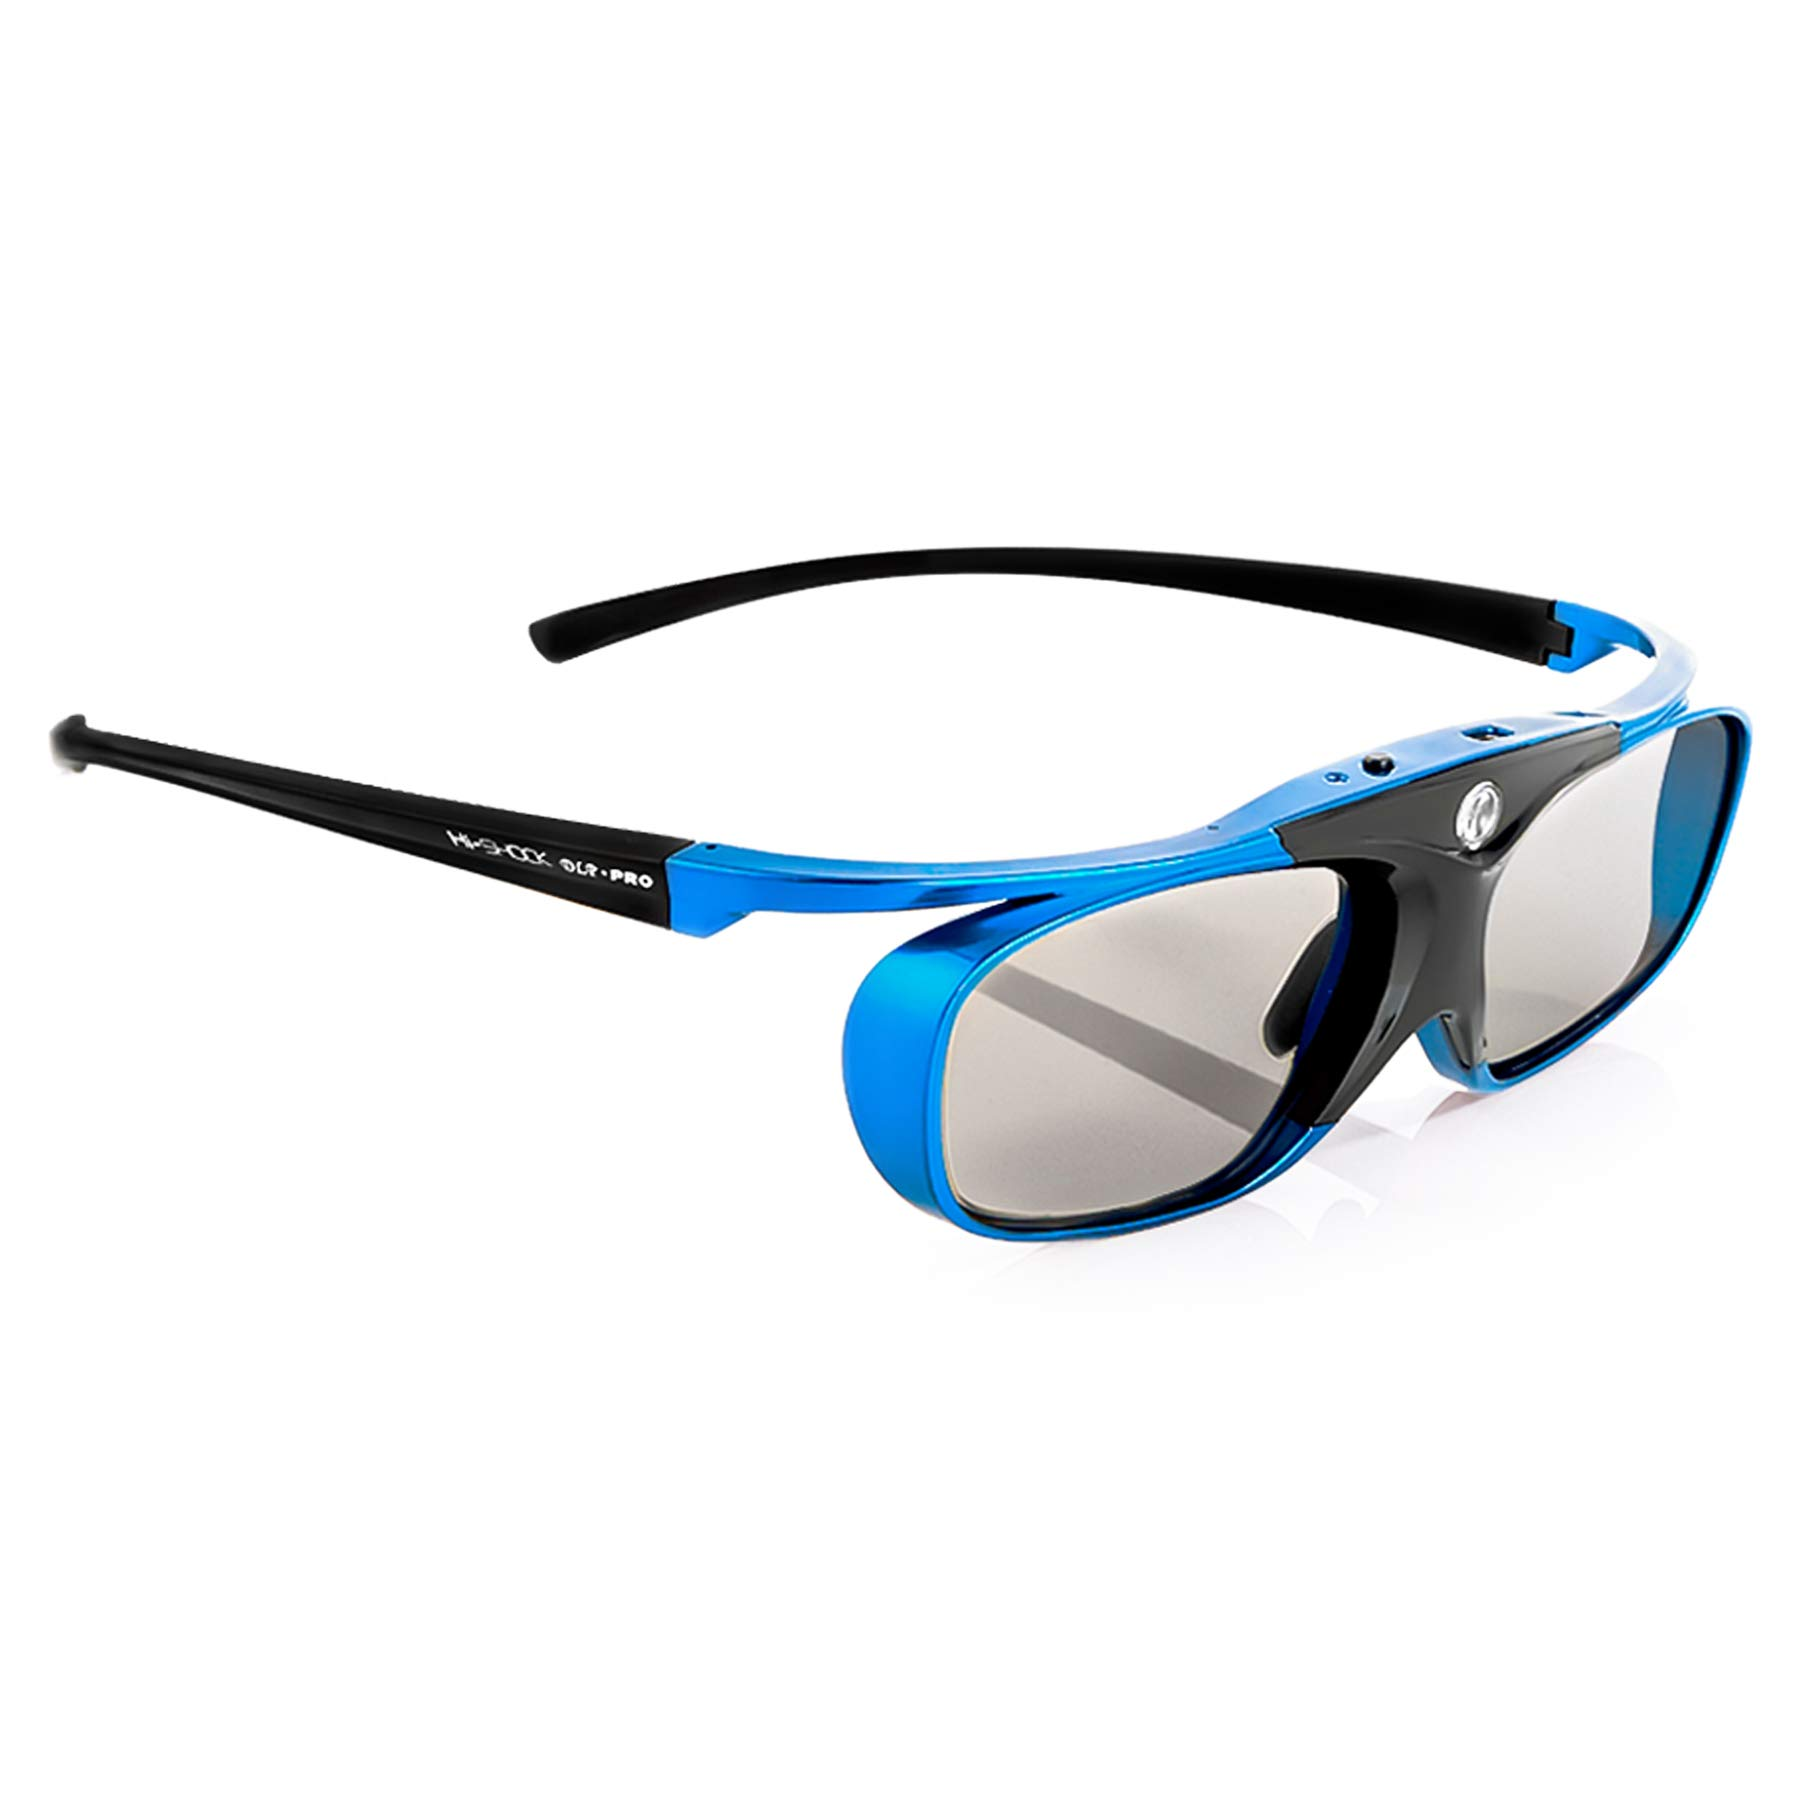 What Can You Do To Avoid Wasting Your Samsung 3d Glasses Ssg-3100GB